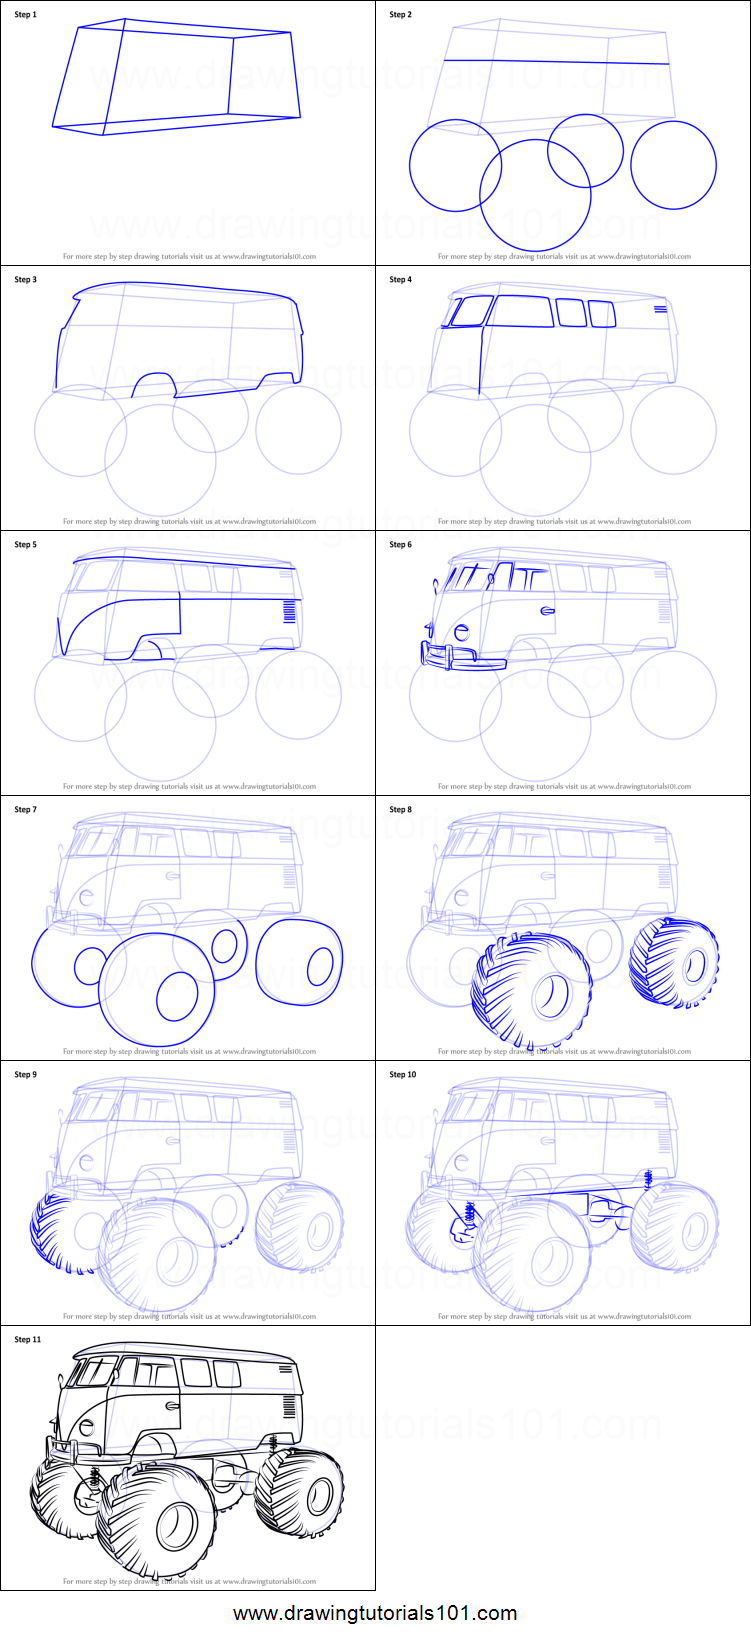 2 Easy Ways to Draw a Truck (with Pictures) - wikiHow